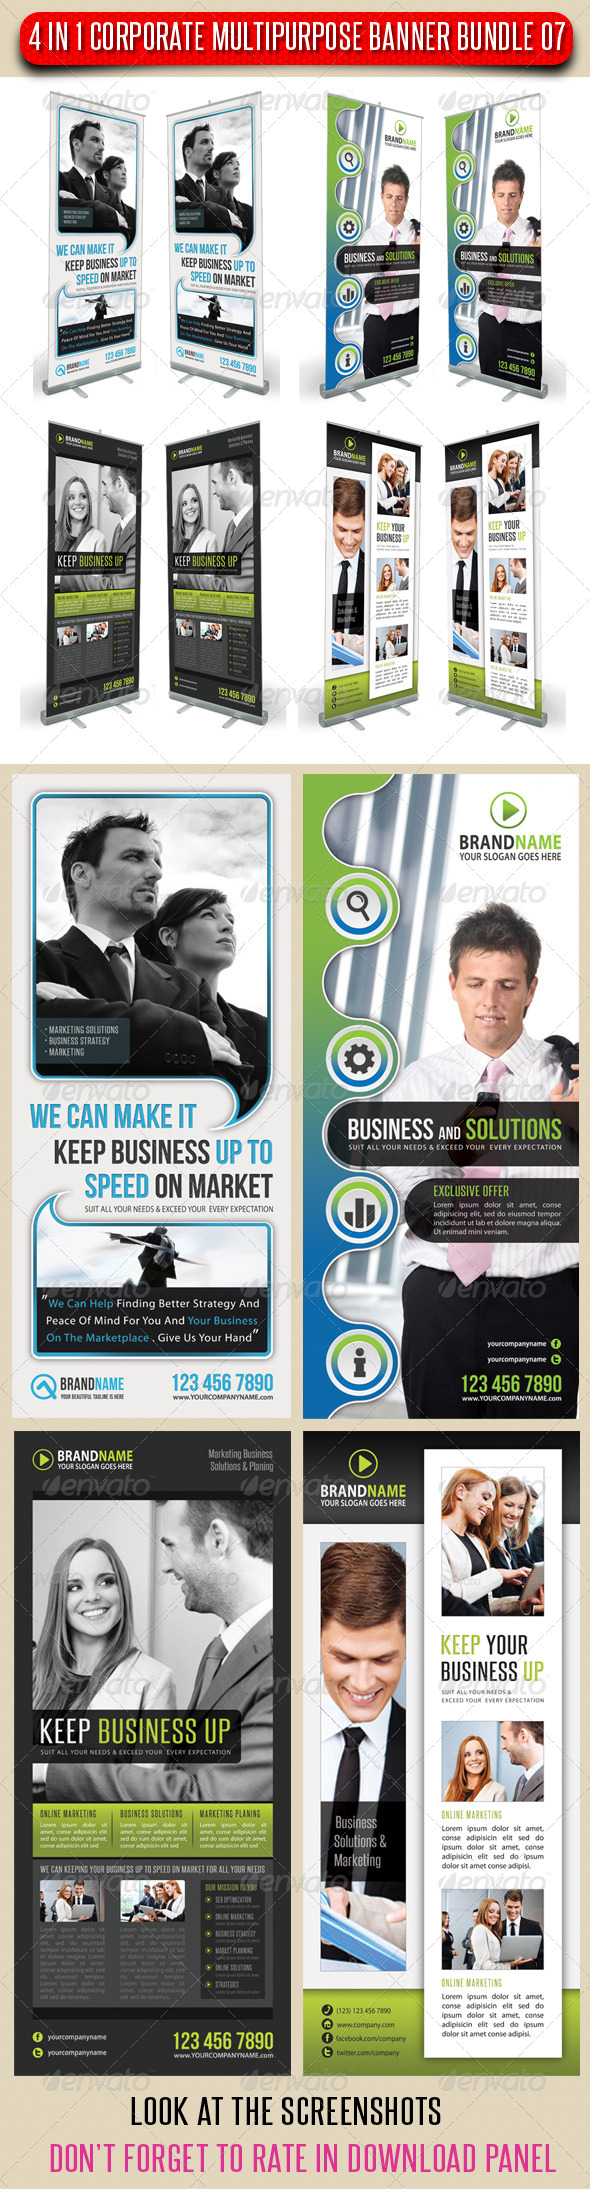 GraphicRiver 4 in 1 Corporate Multipurpose Banner Bundle 07 6732378